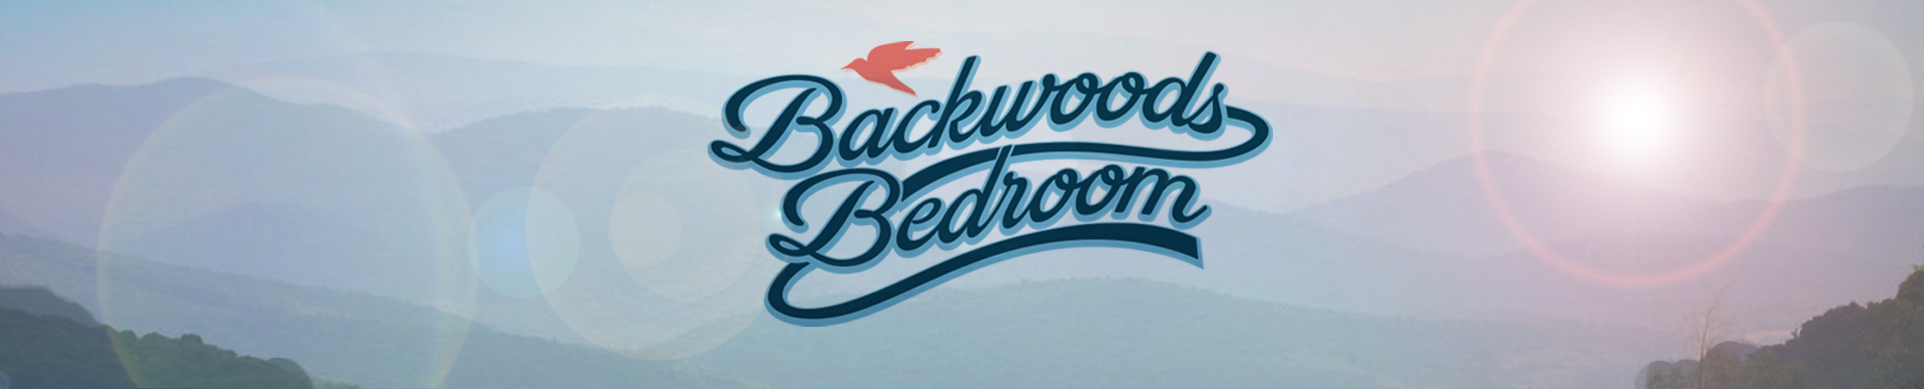 Backwoods Bedroom